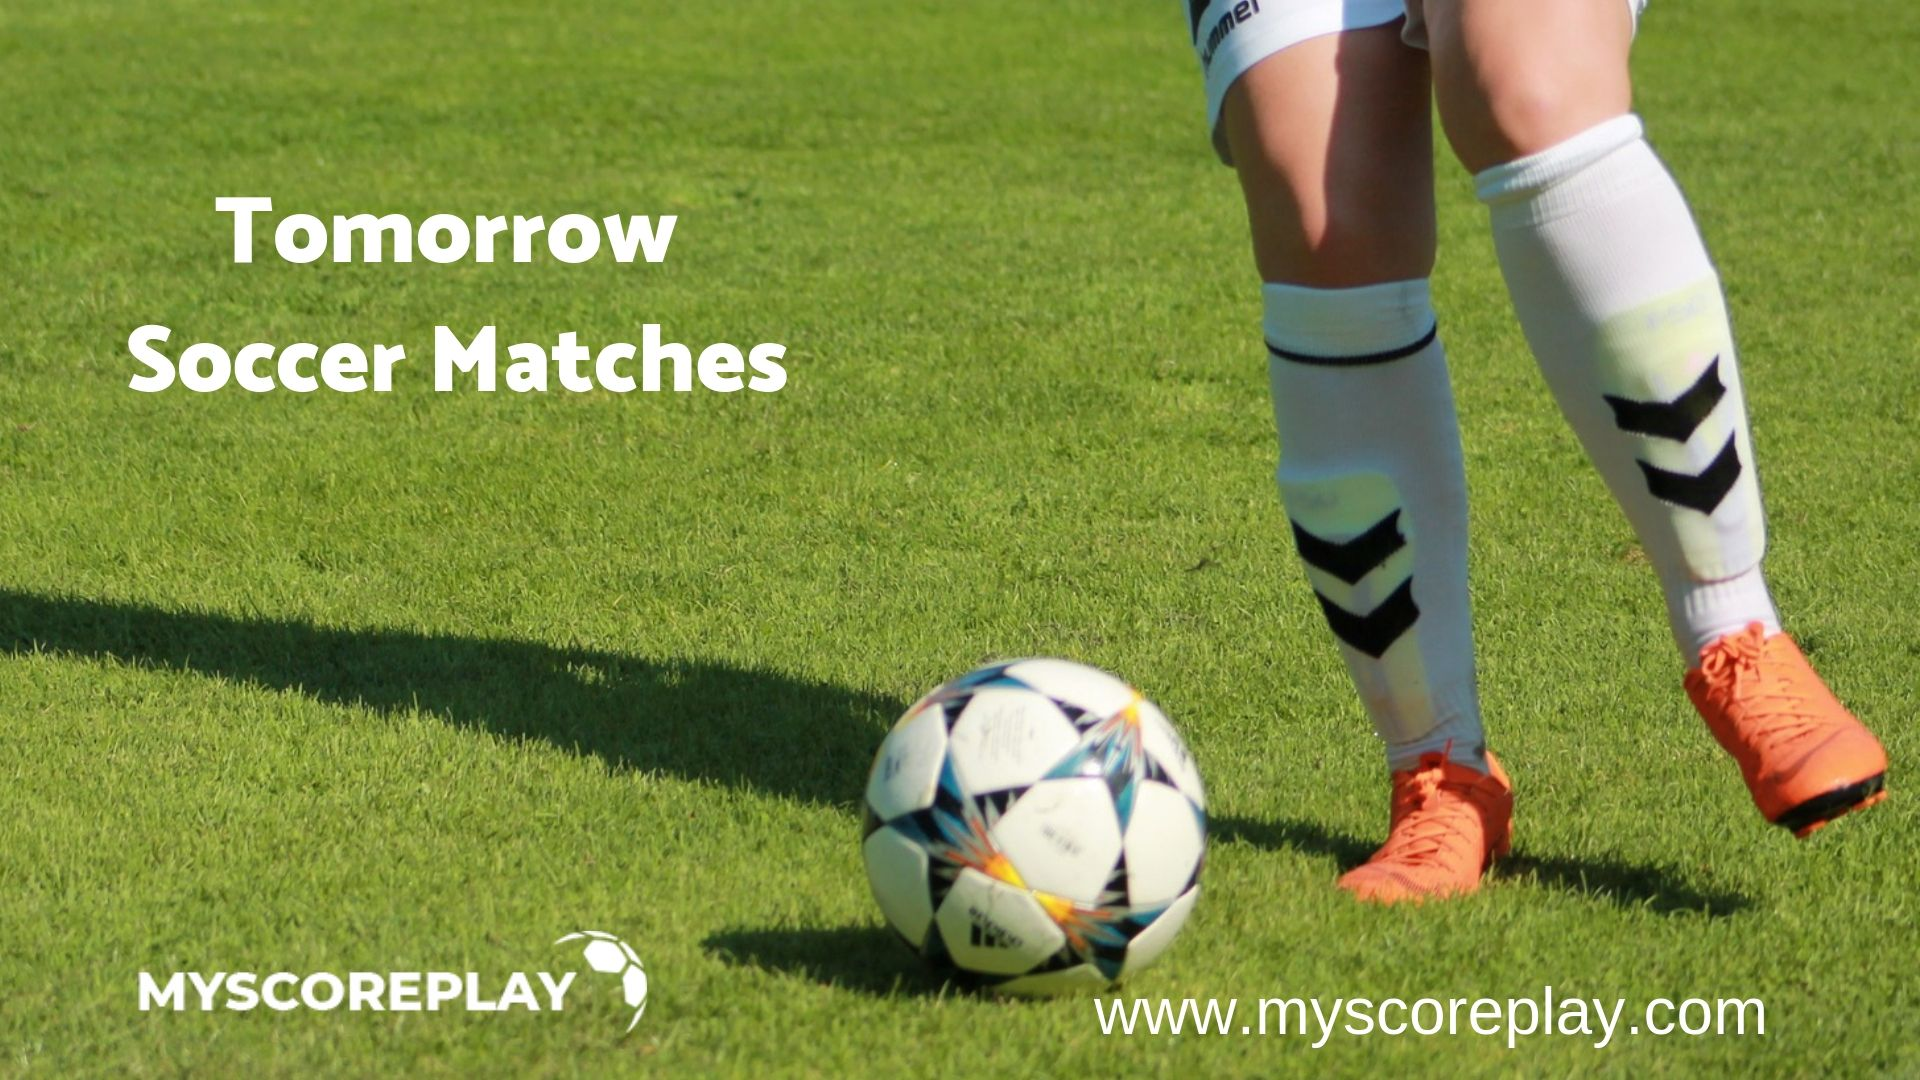 Football betting tips and stats for tomorrow soccer matches